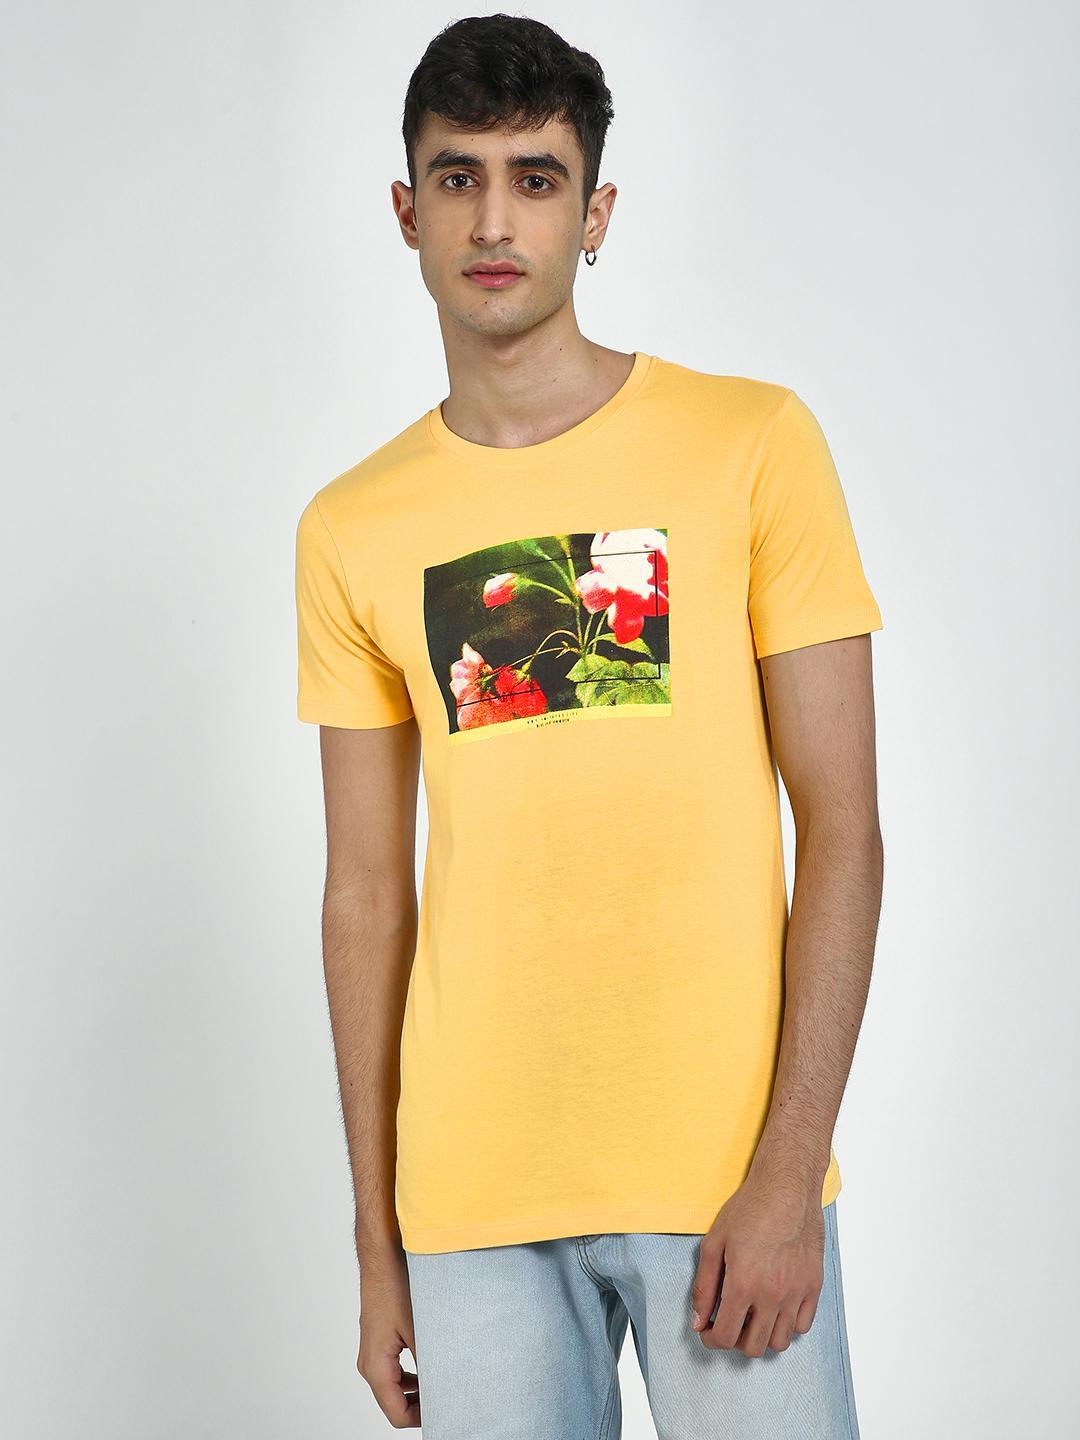 Blue Saint Yellow Placement Print Round Neck T-Shirts 1